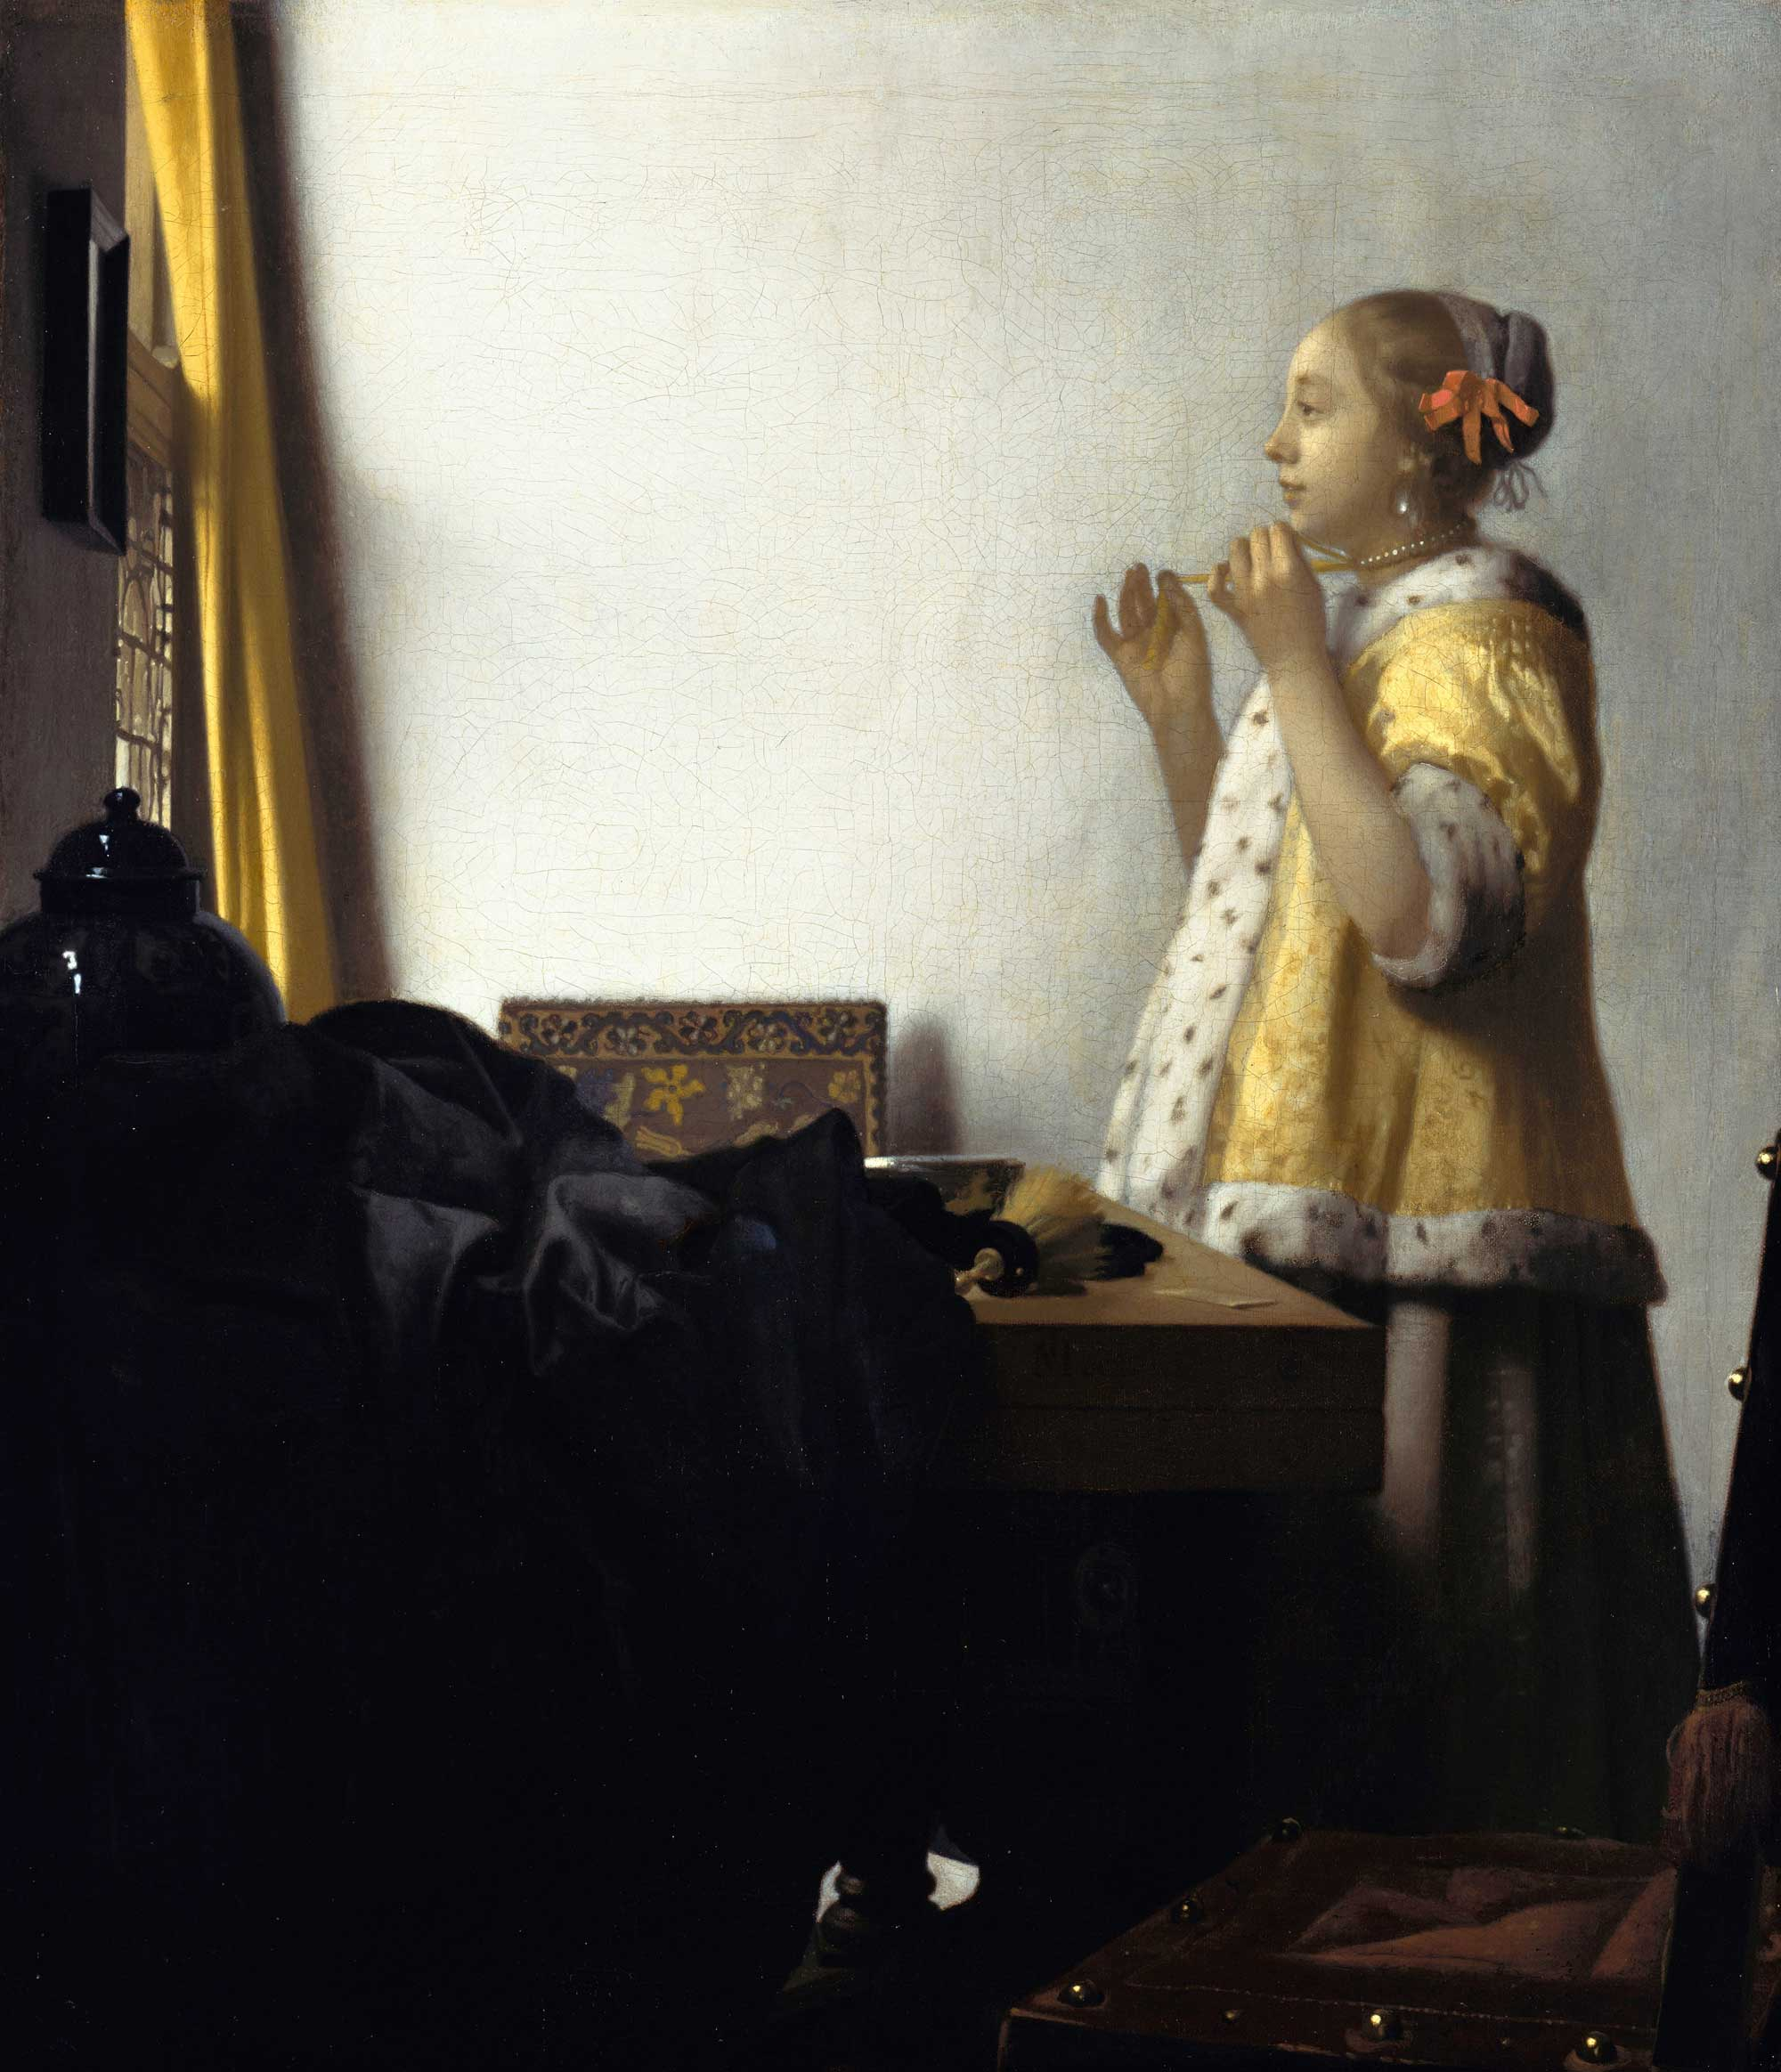 vermeer-young-woman-with-a-pearl-necklace